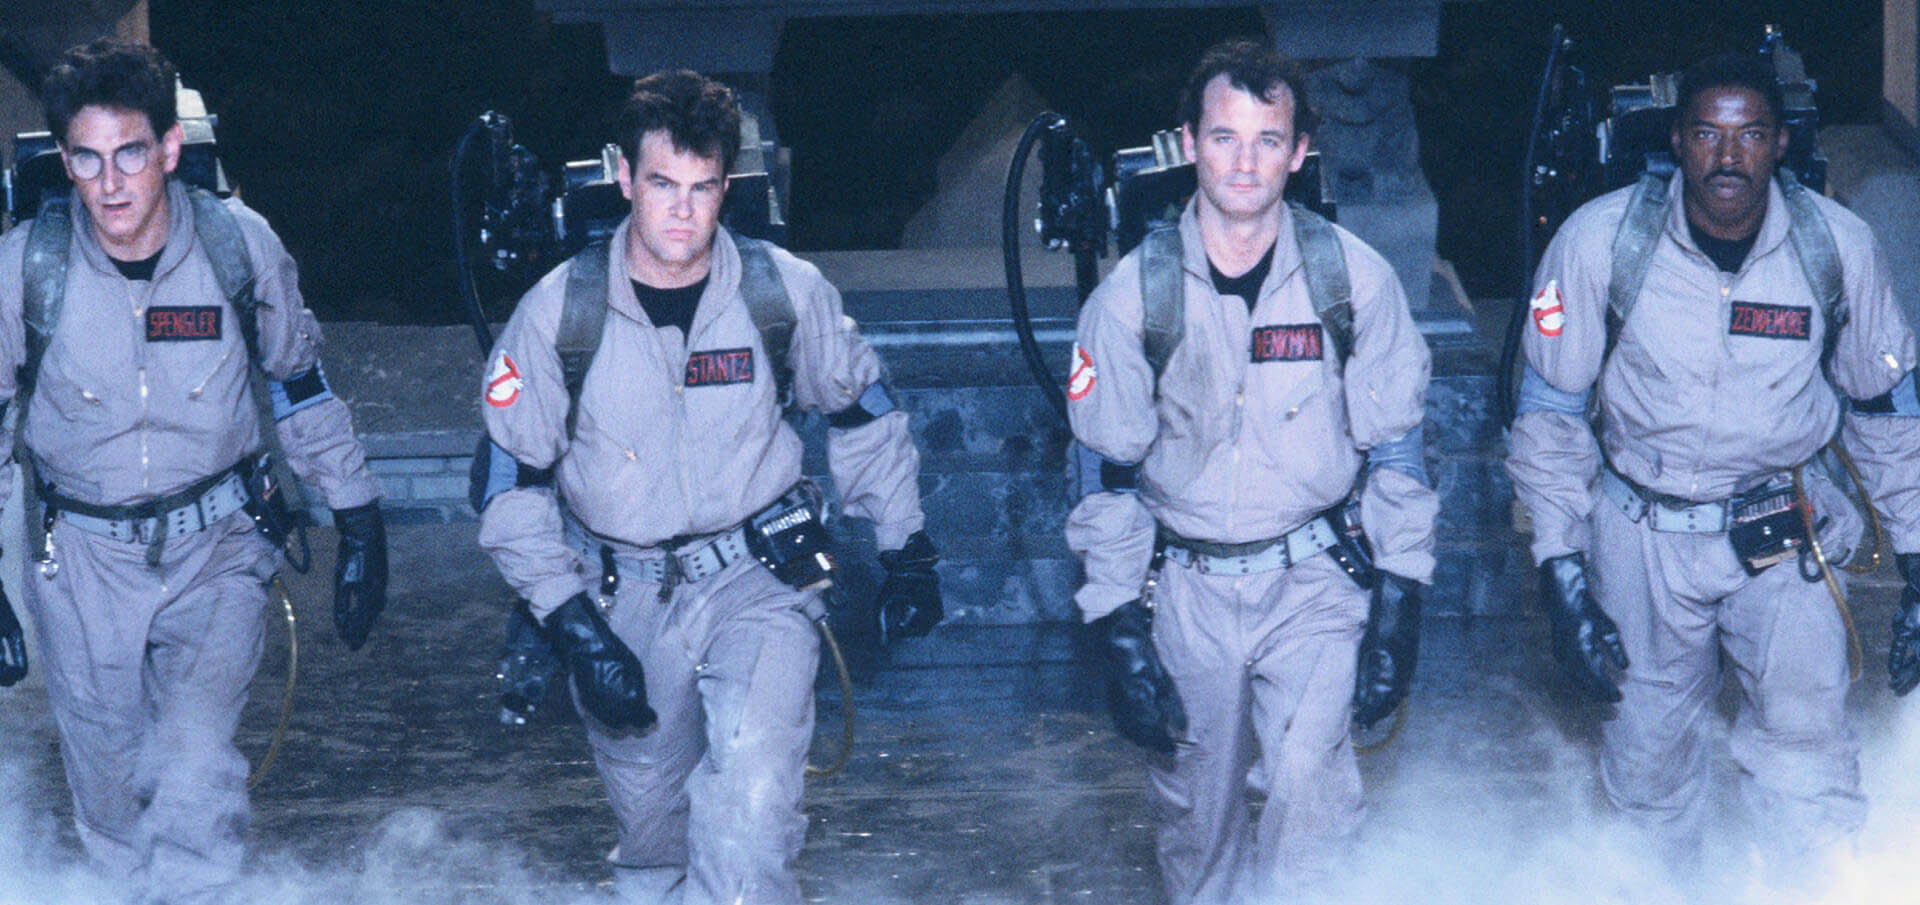 1984 Movie Project - Ghostbusters - 01